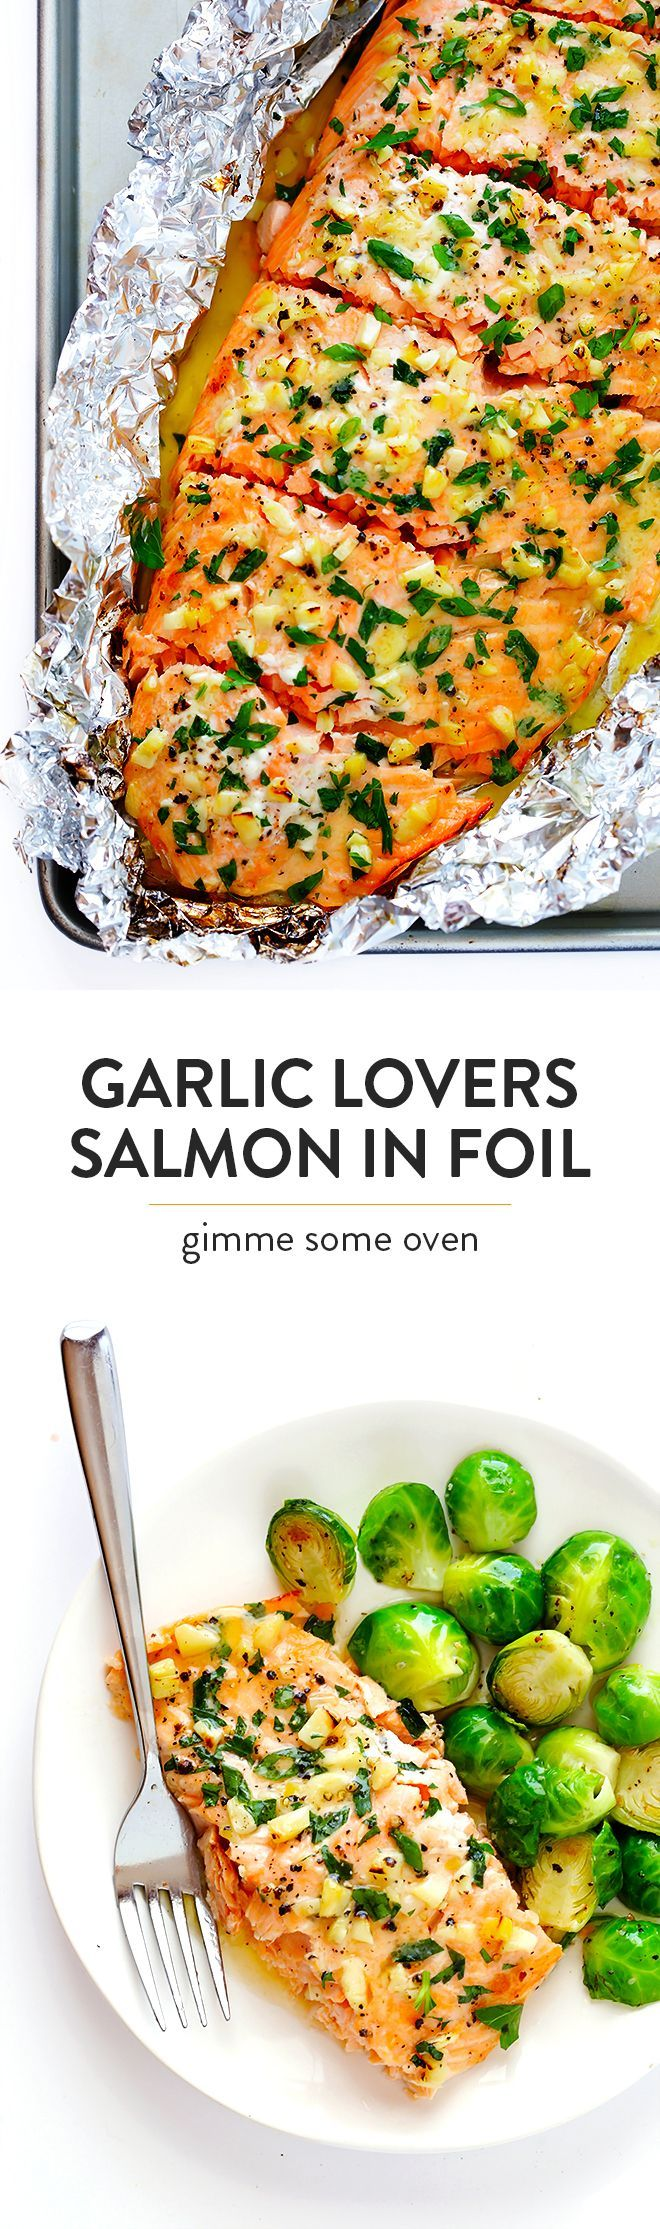 Garlic Lovers Salmon In Foil (baked Or Grilled)